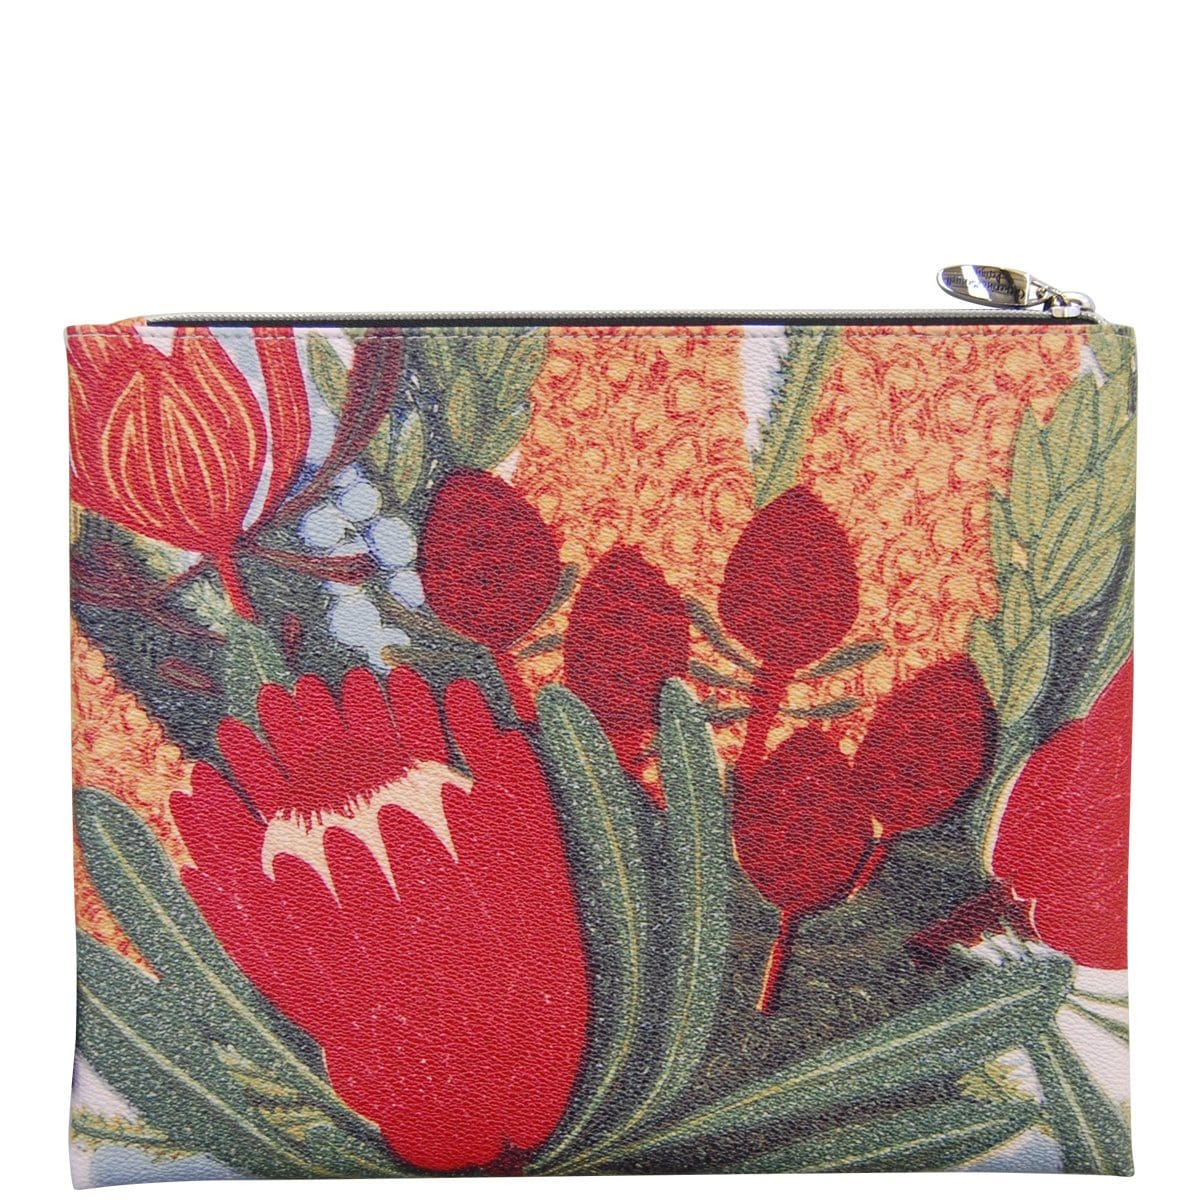 Floral Essentials Pouch - Native Posy